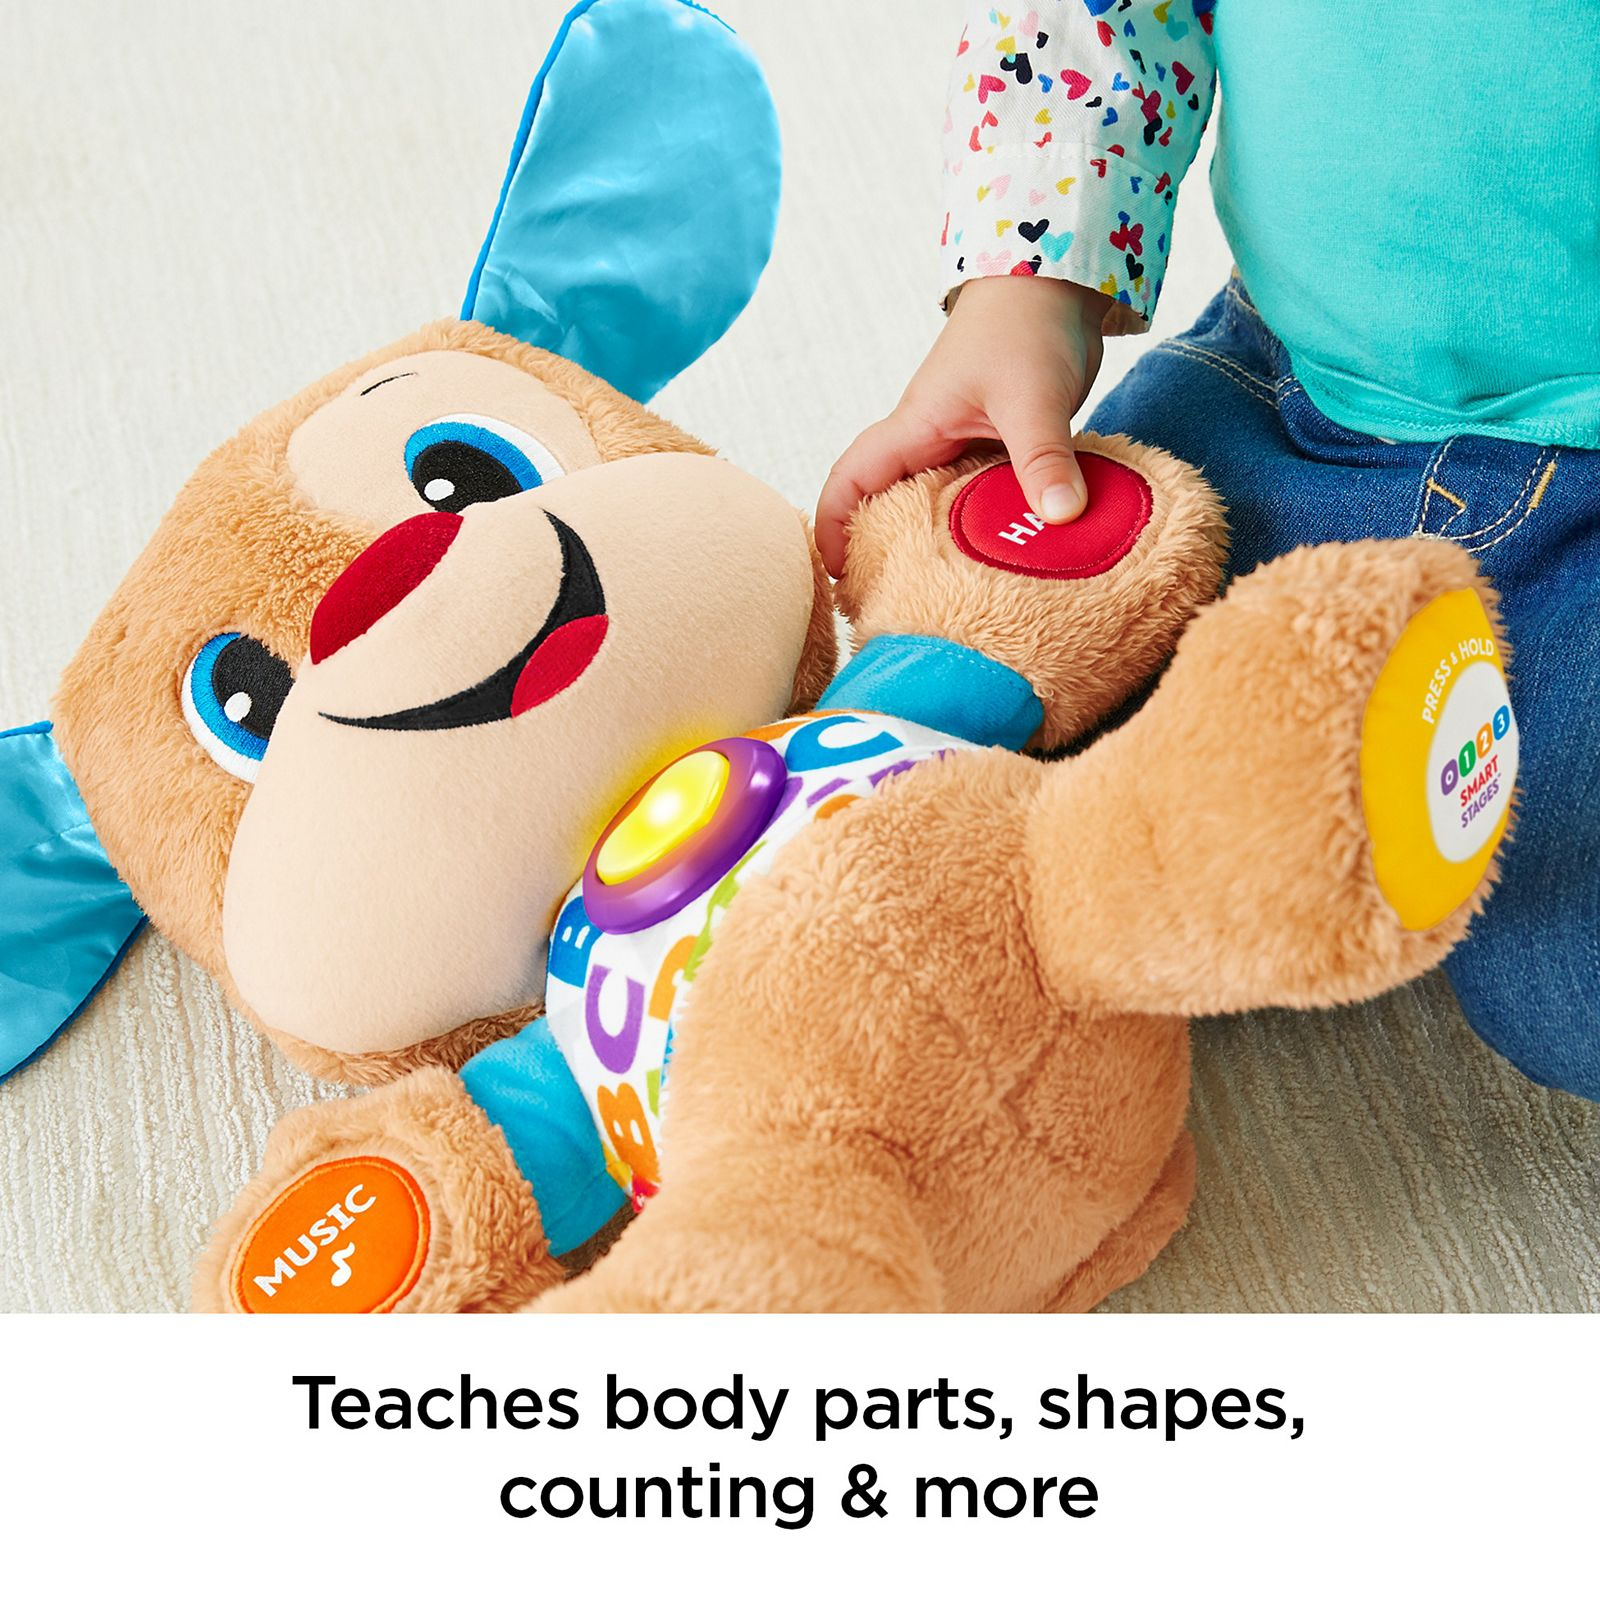 Smart Stages Puppy Educational Baby Soft Plush Toy Learn Shape Counting Alphabet